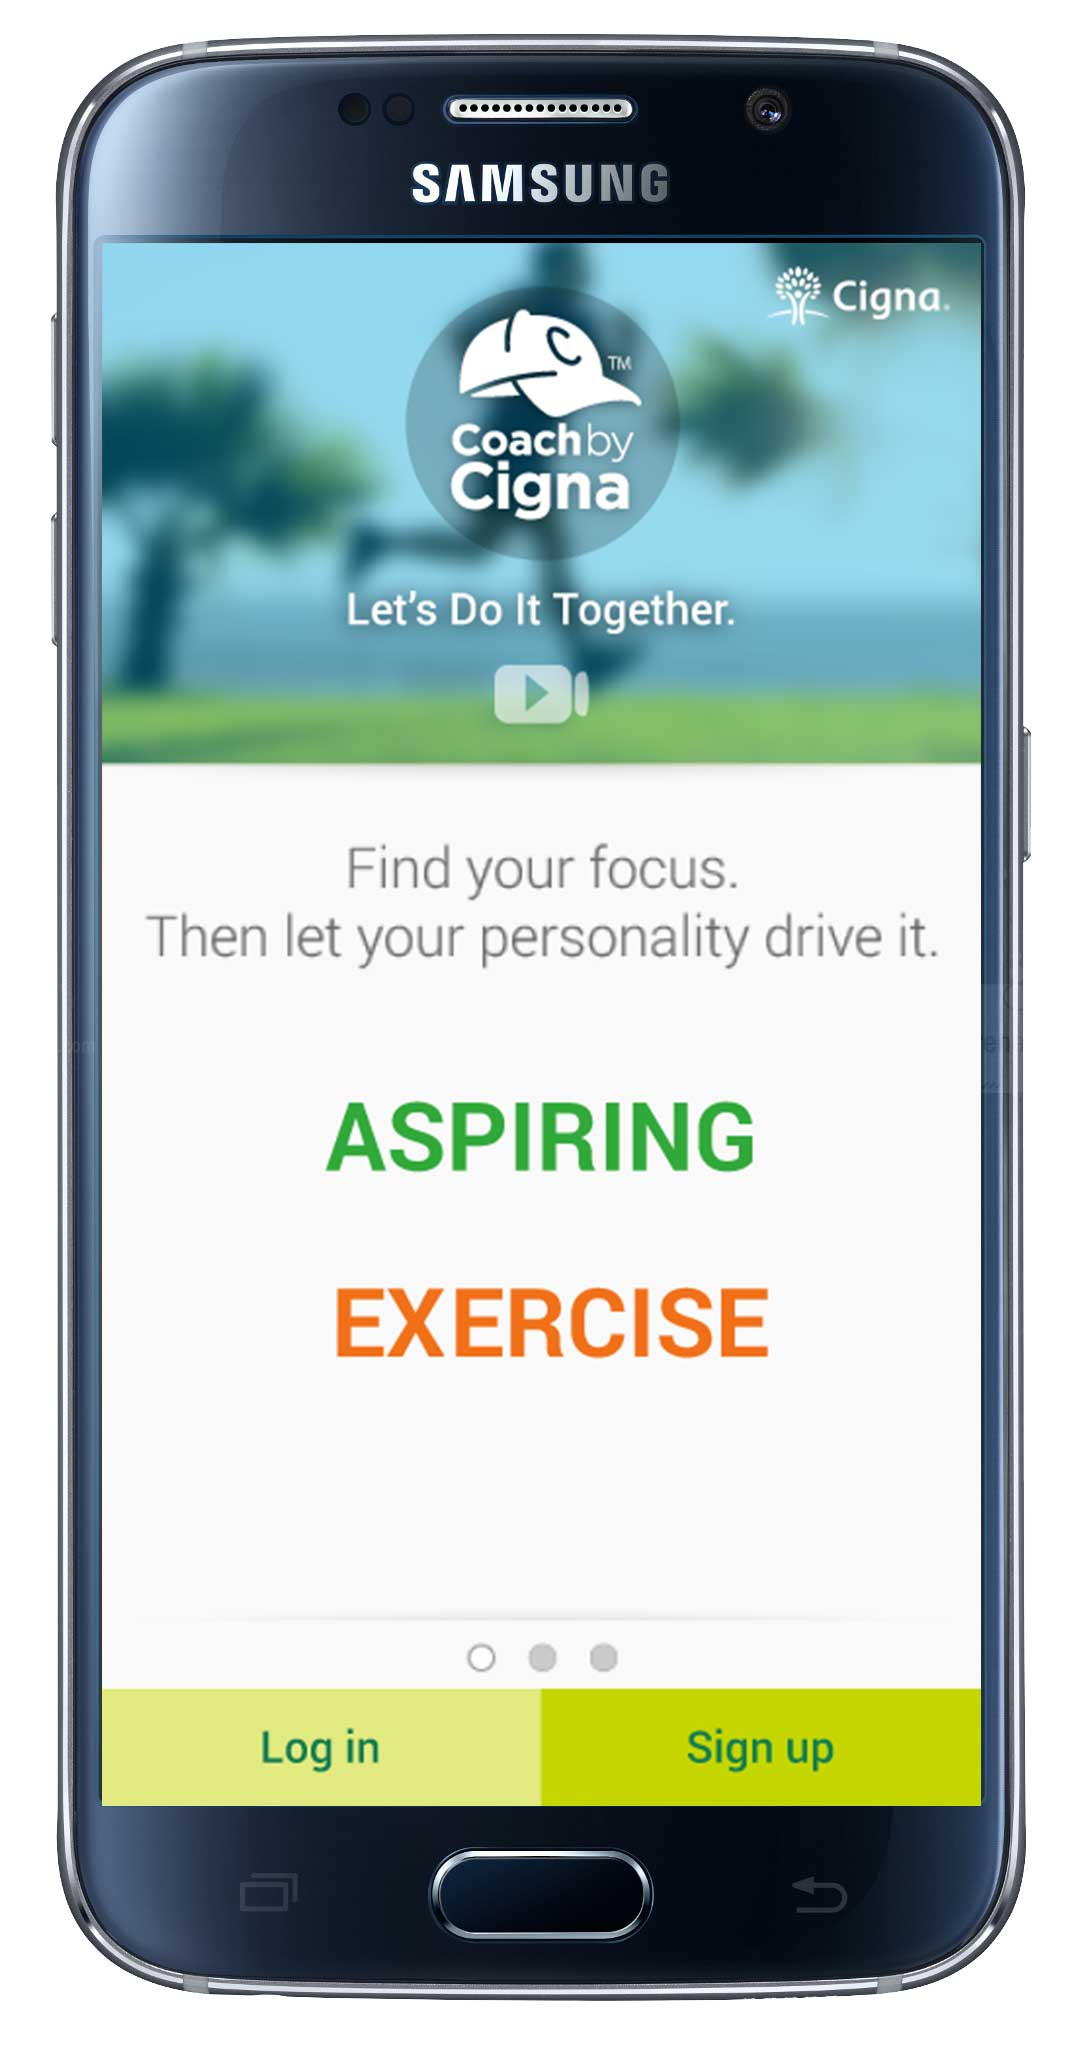 cigna finally an app that understands you and speaks